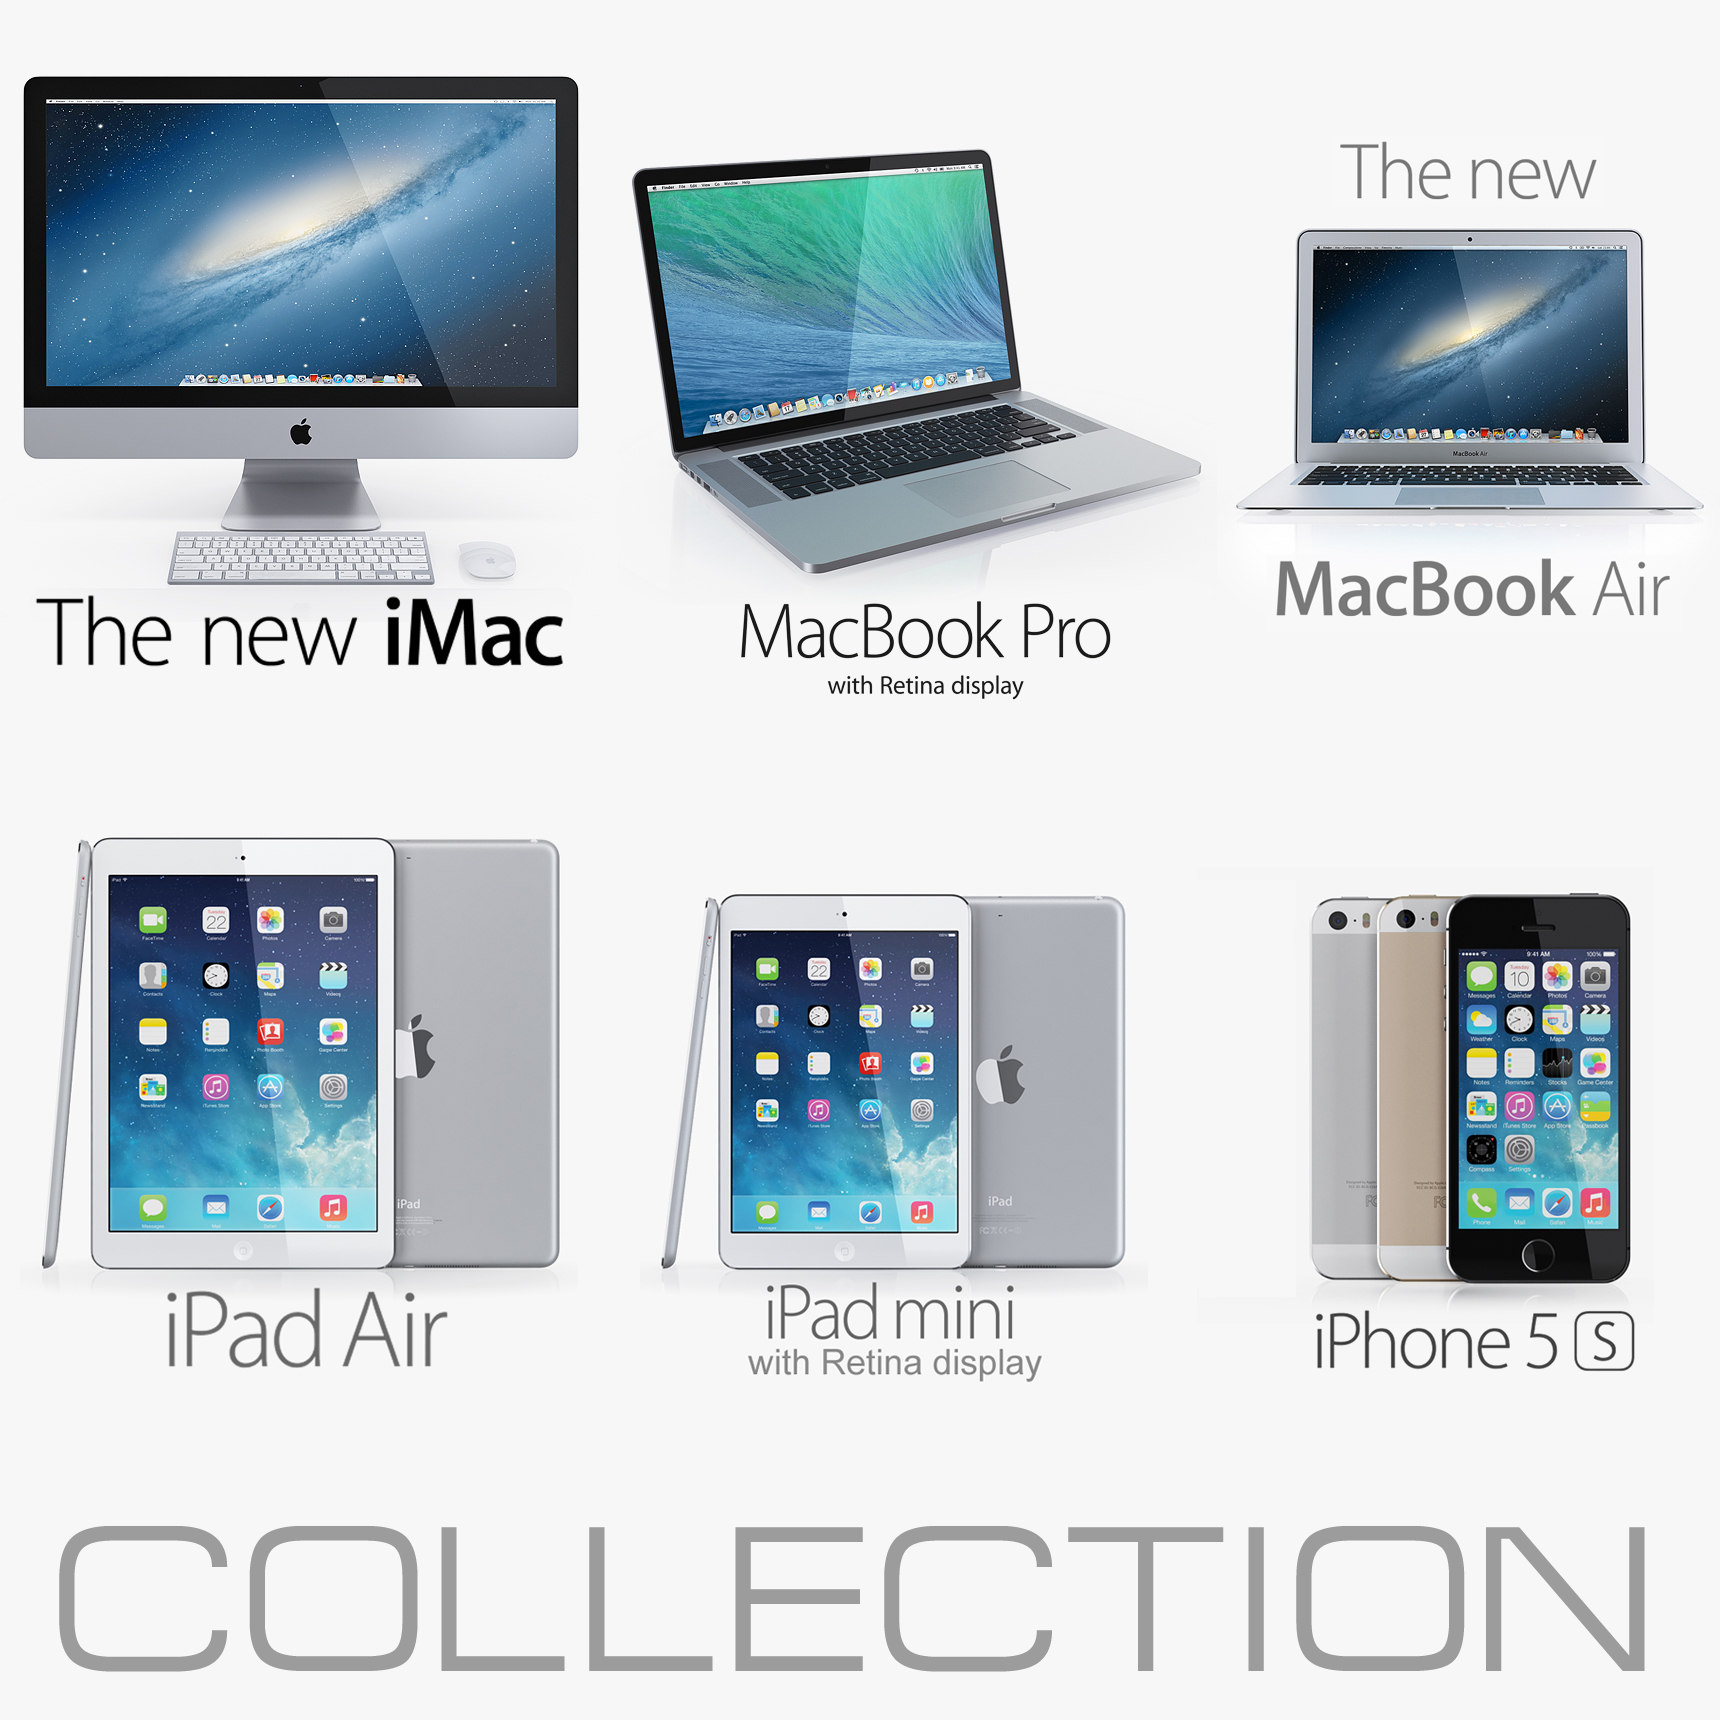 Apple_collection_2014_v1.jpg